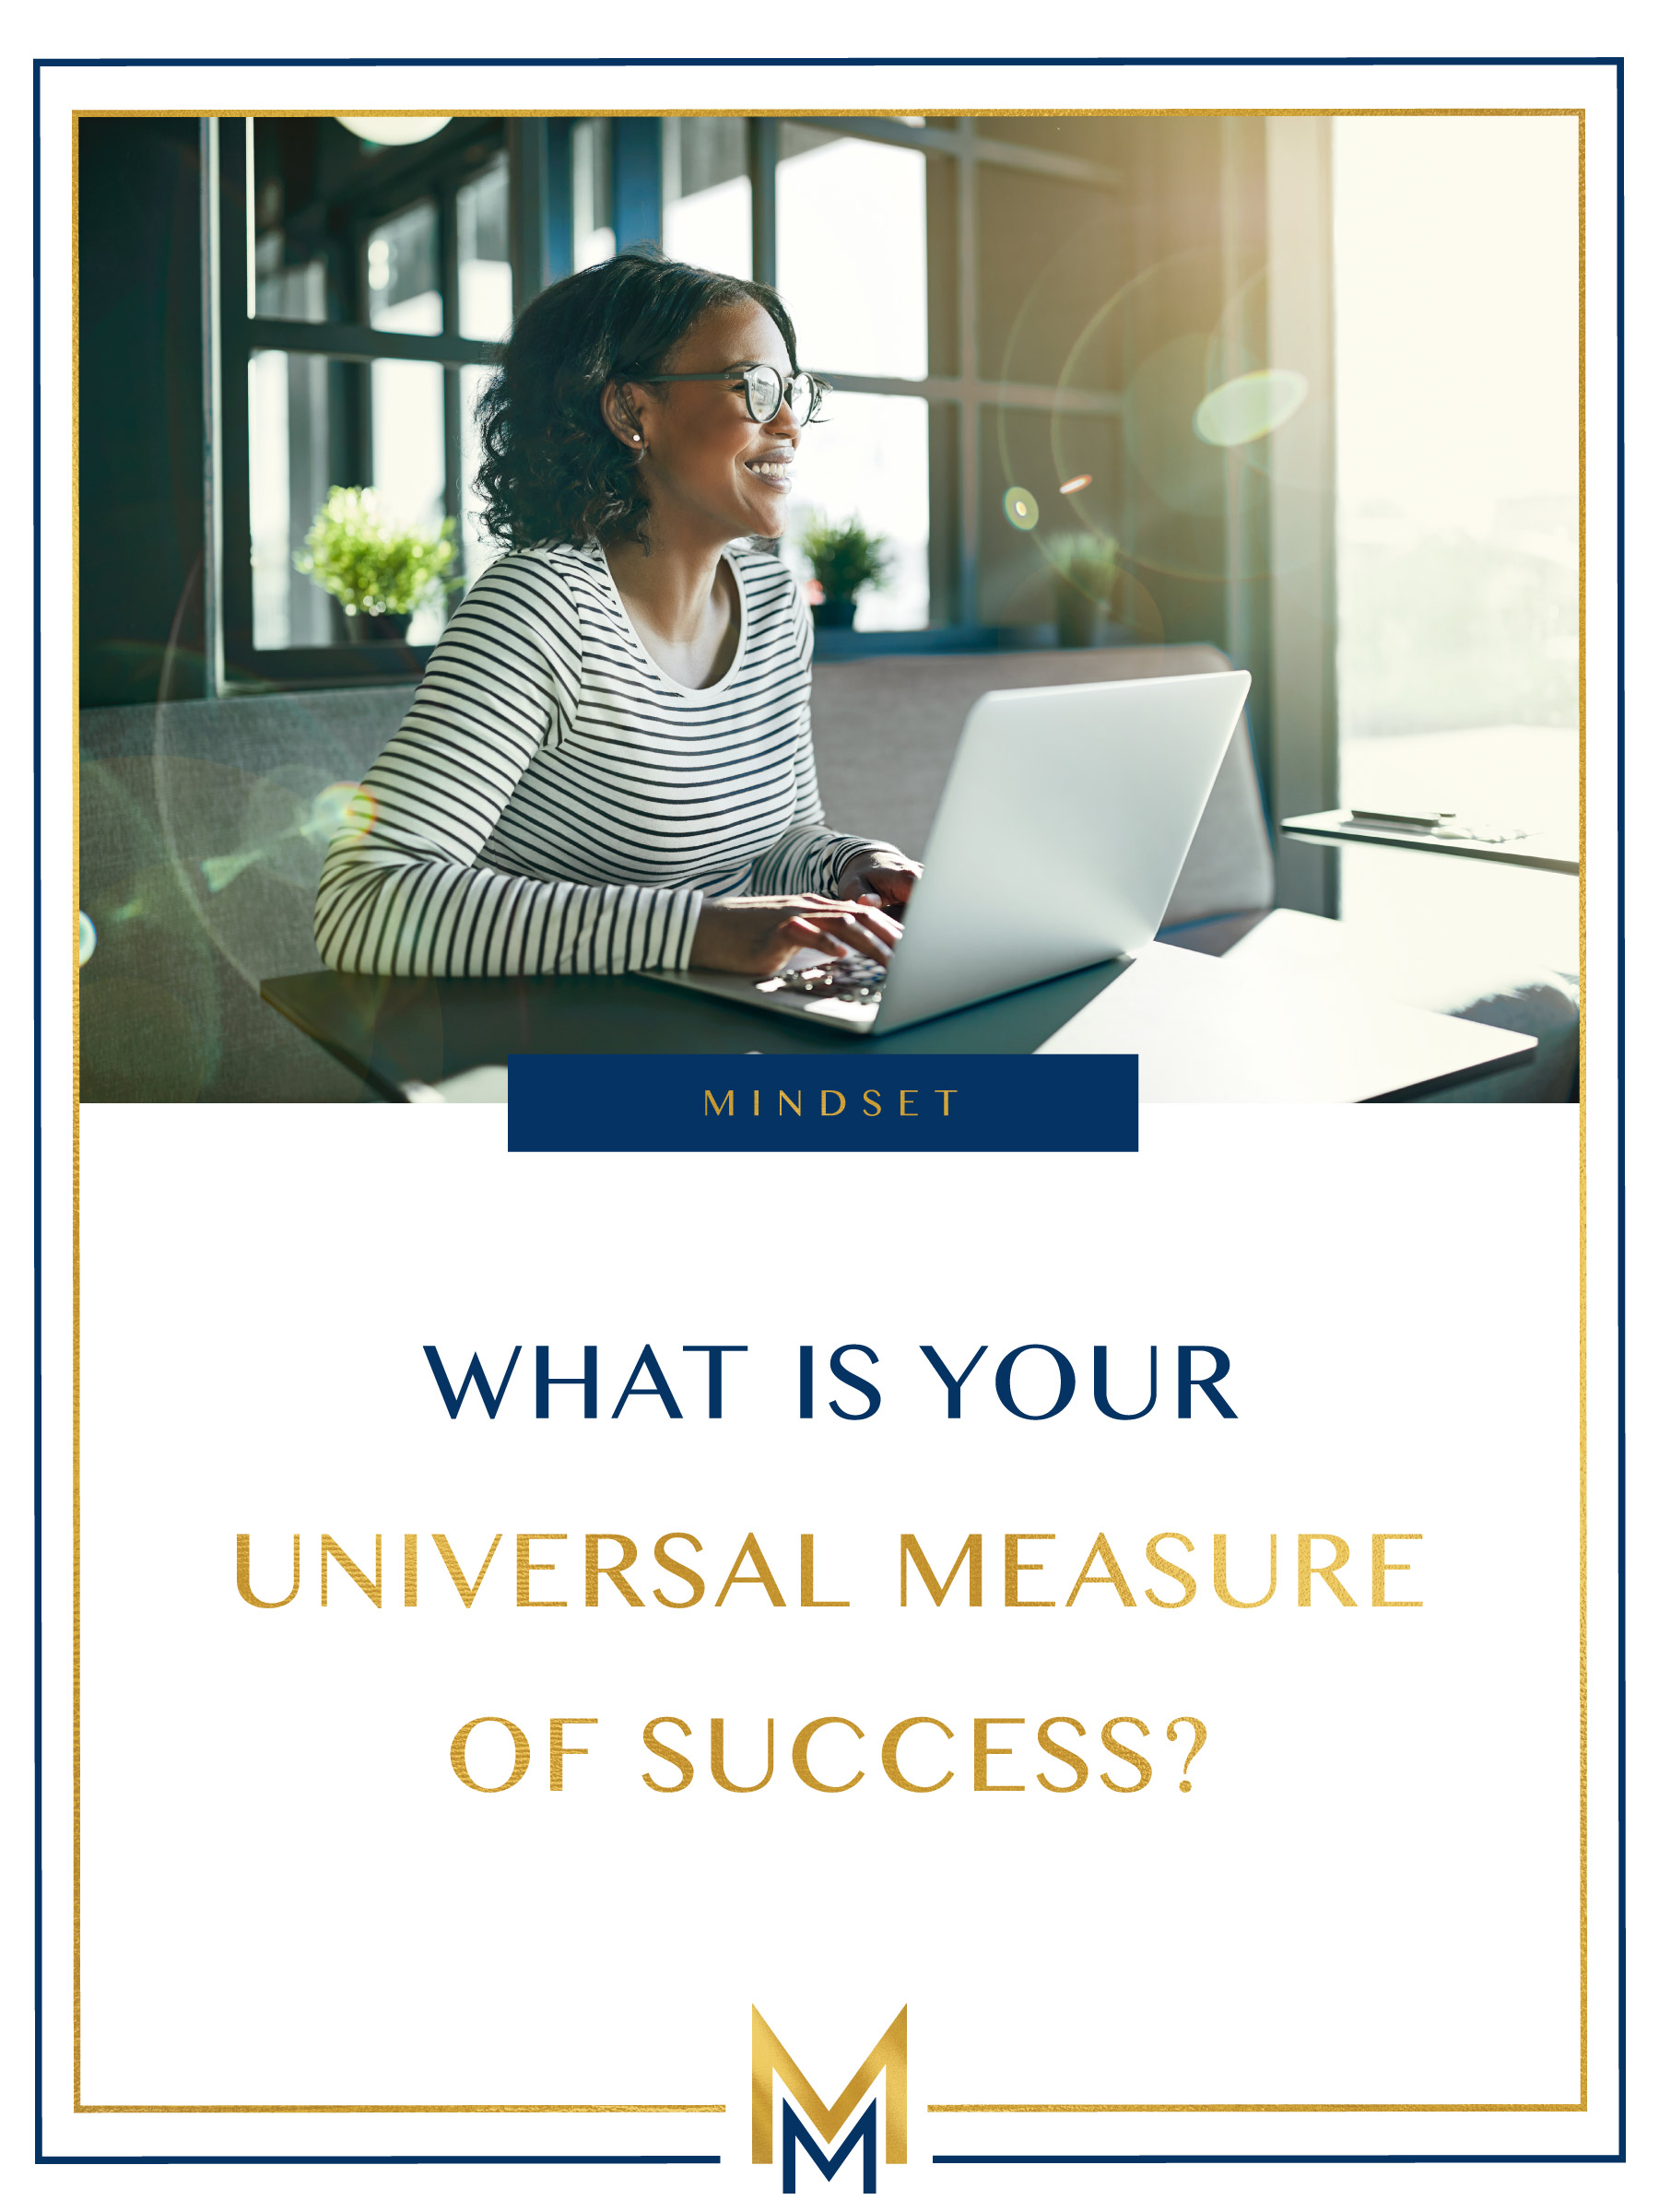 what-is-your-universal-measure-of-success.jpg